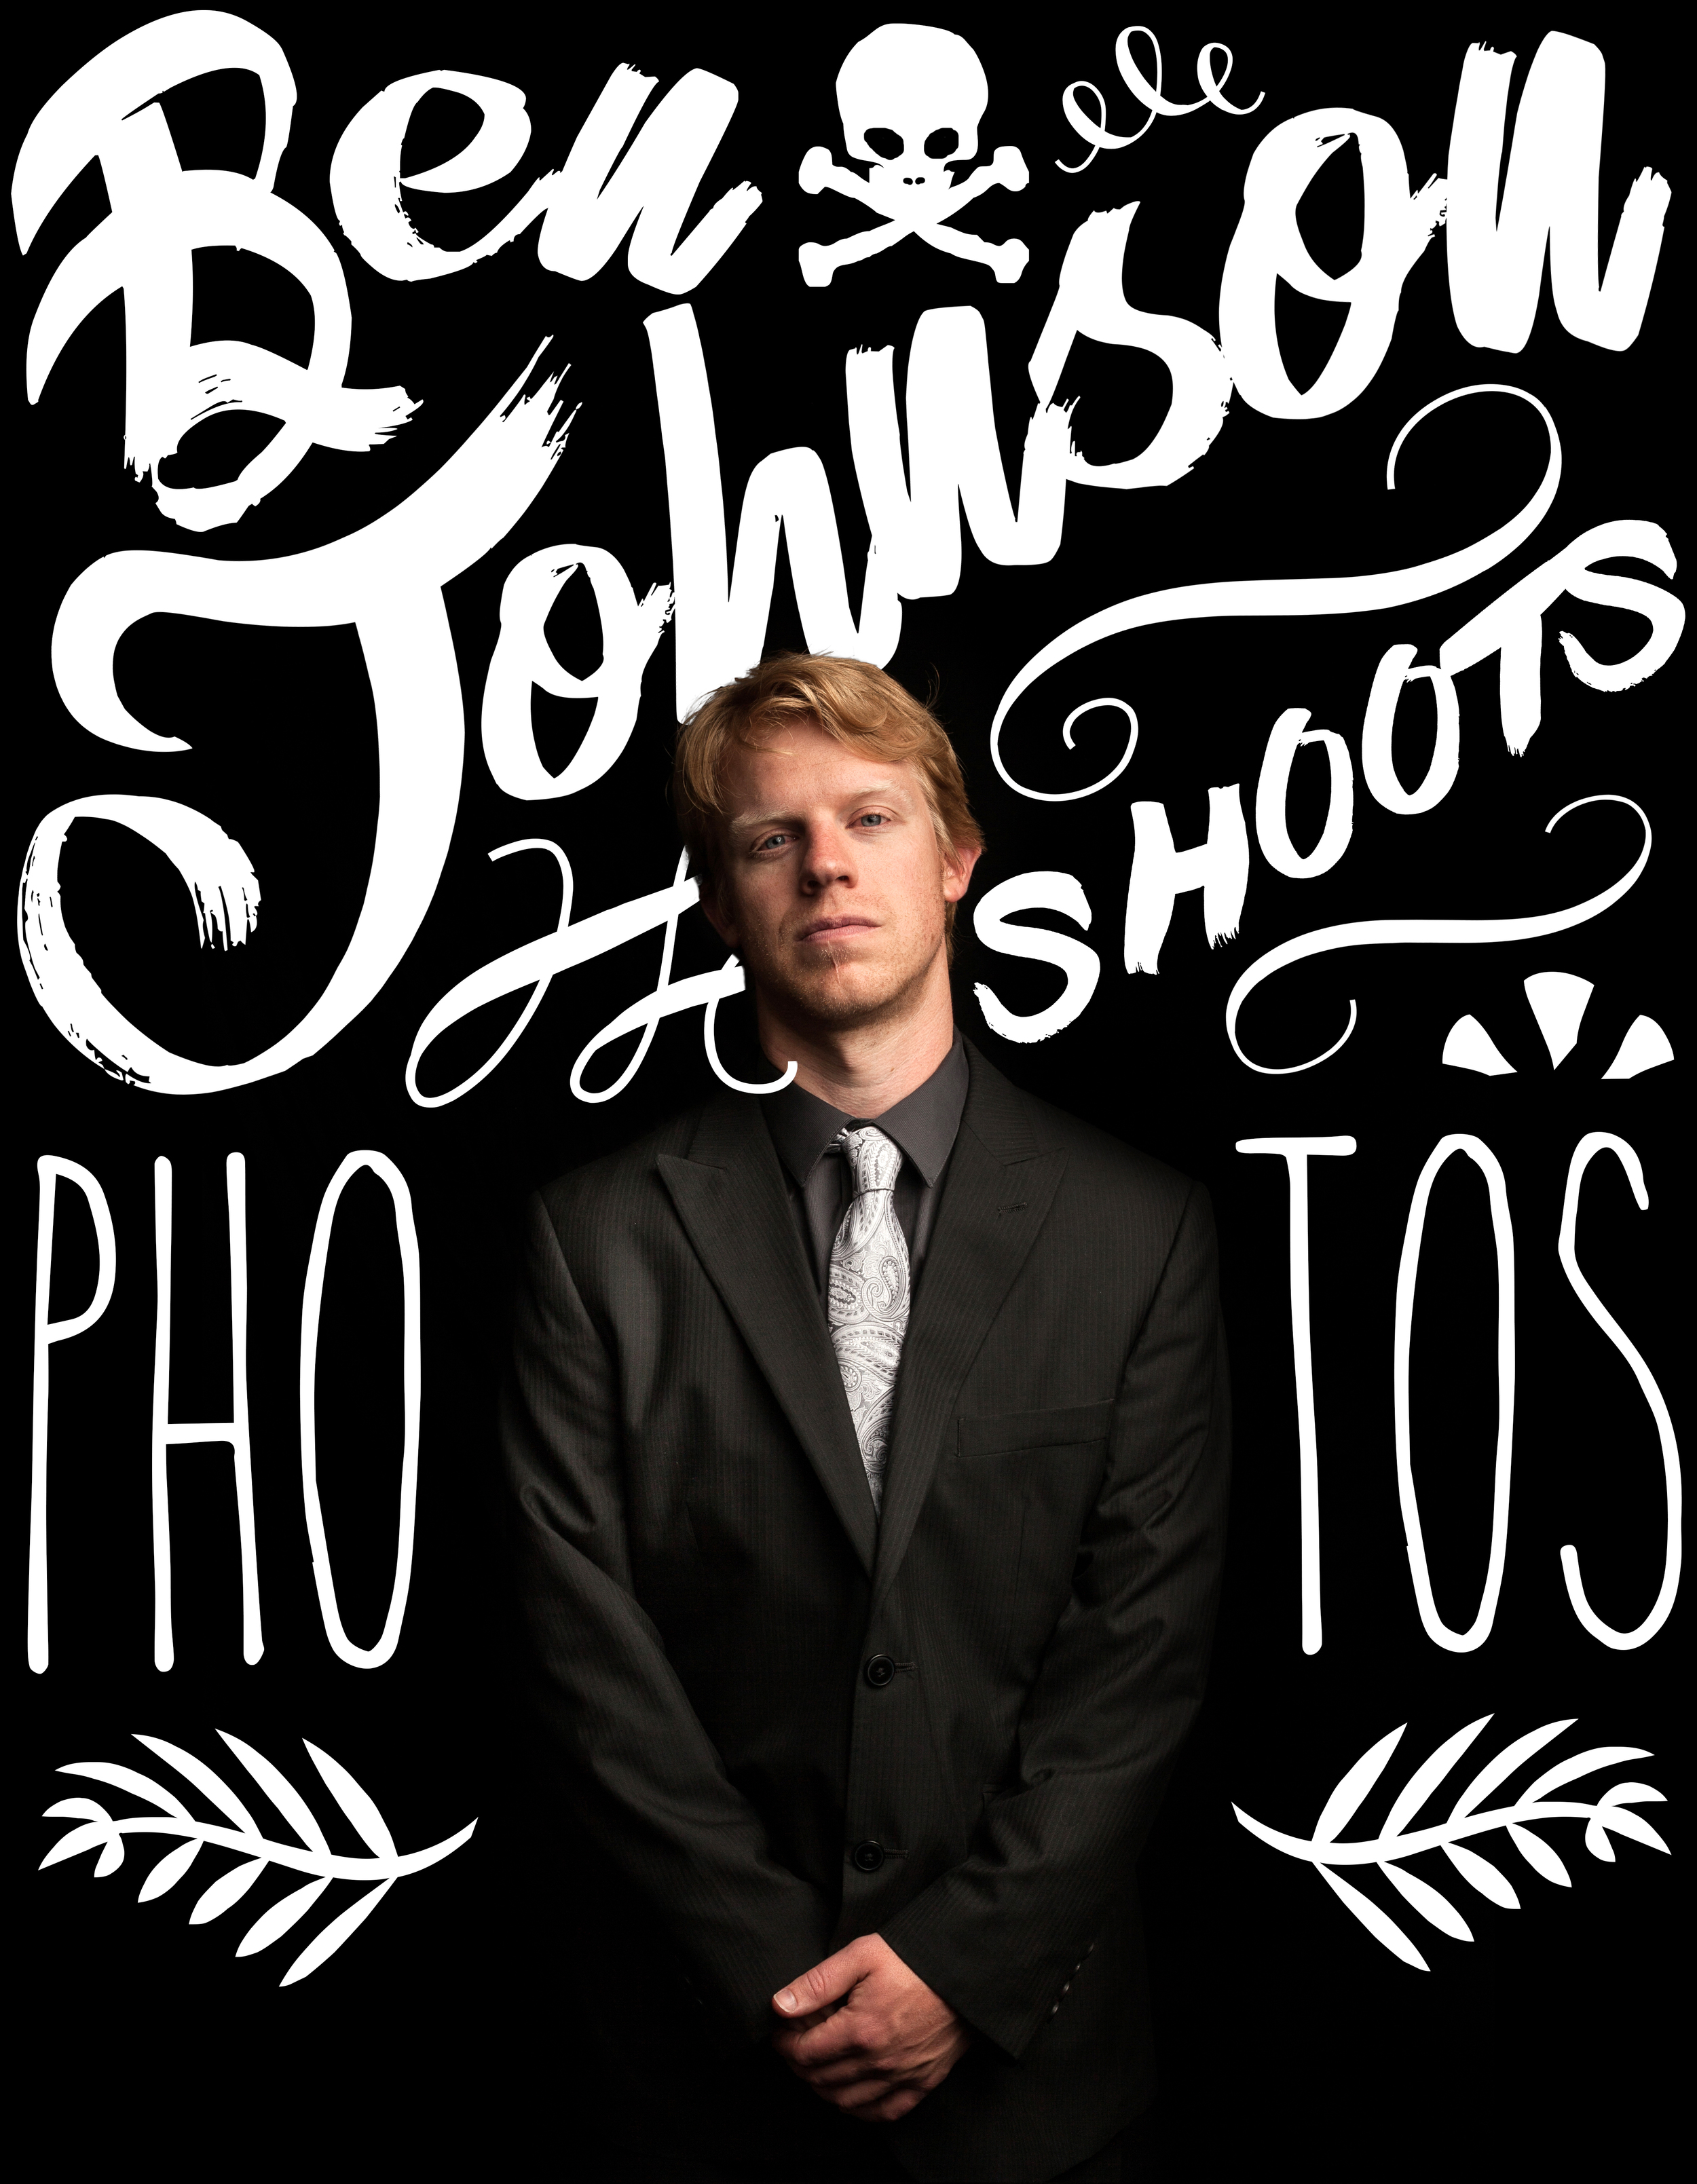 Ben Johnson is a photographer now based in South Korea - Good luck out there, Ben!